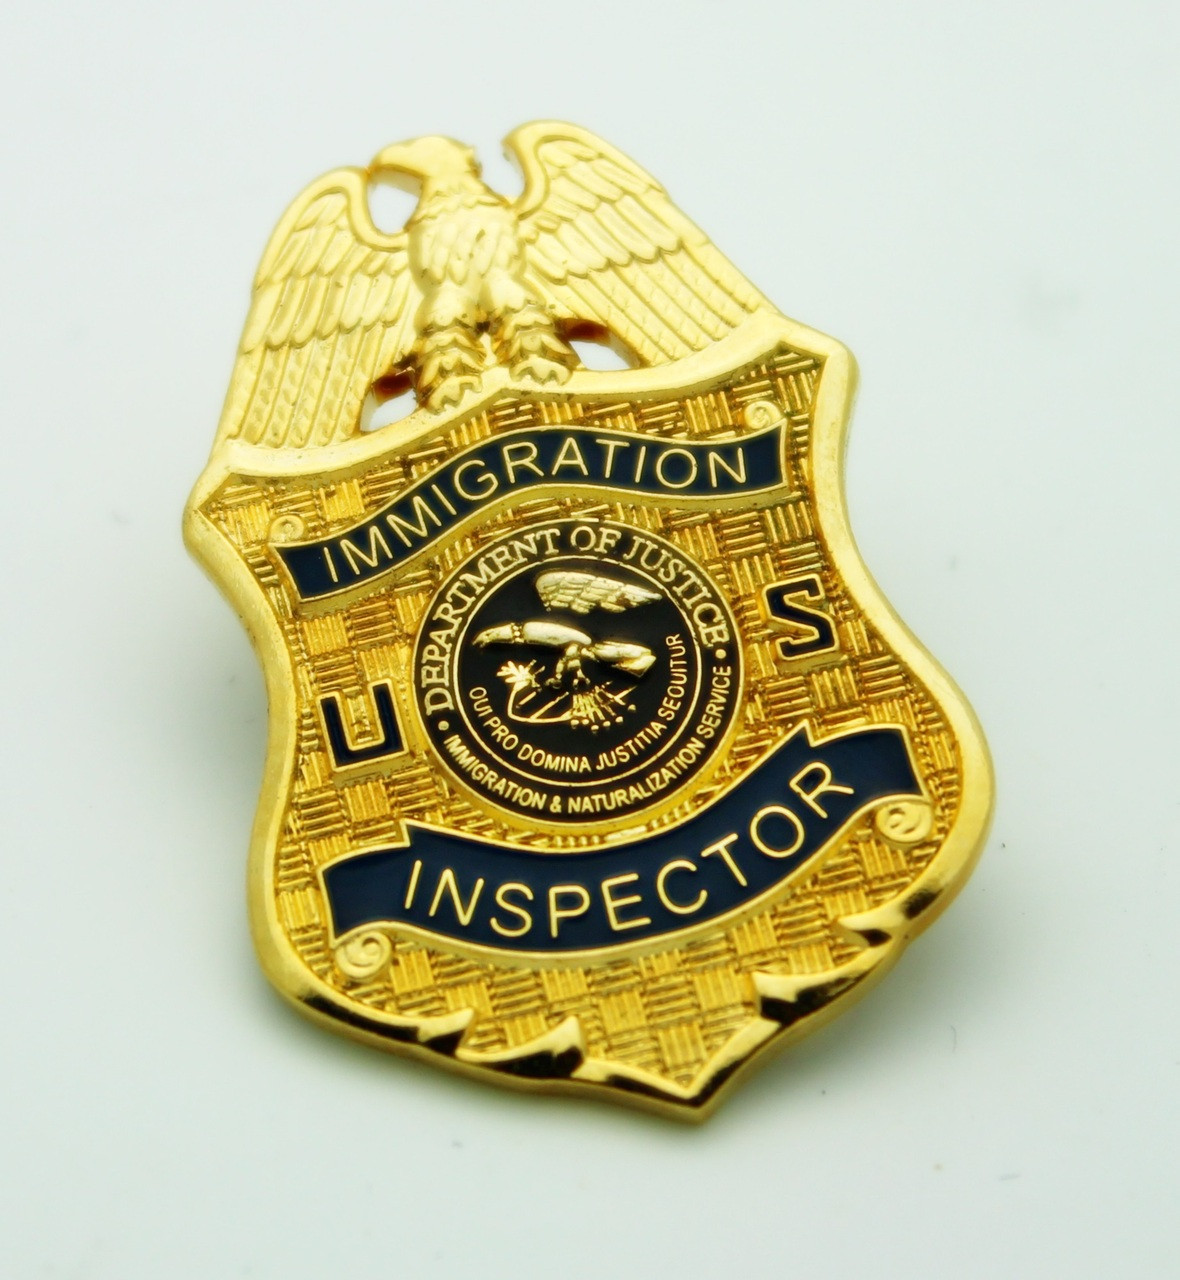 Legacy Immigration And Naturalization Inspector Mini Badge